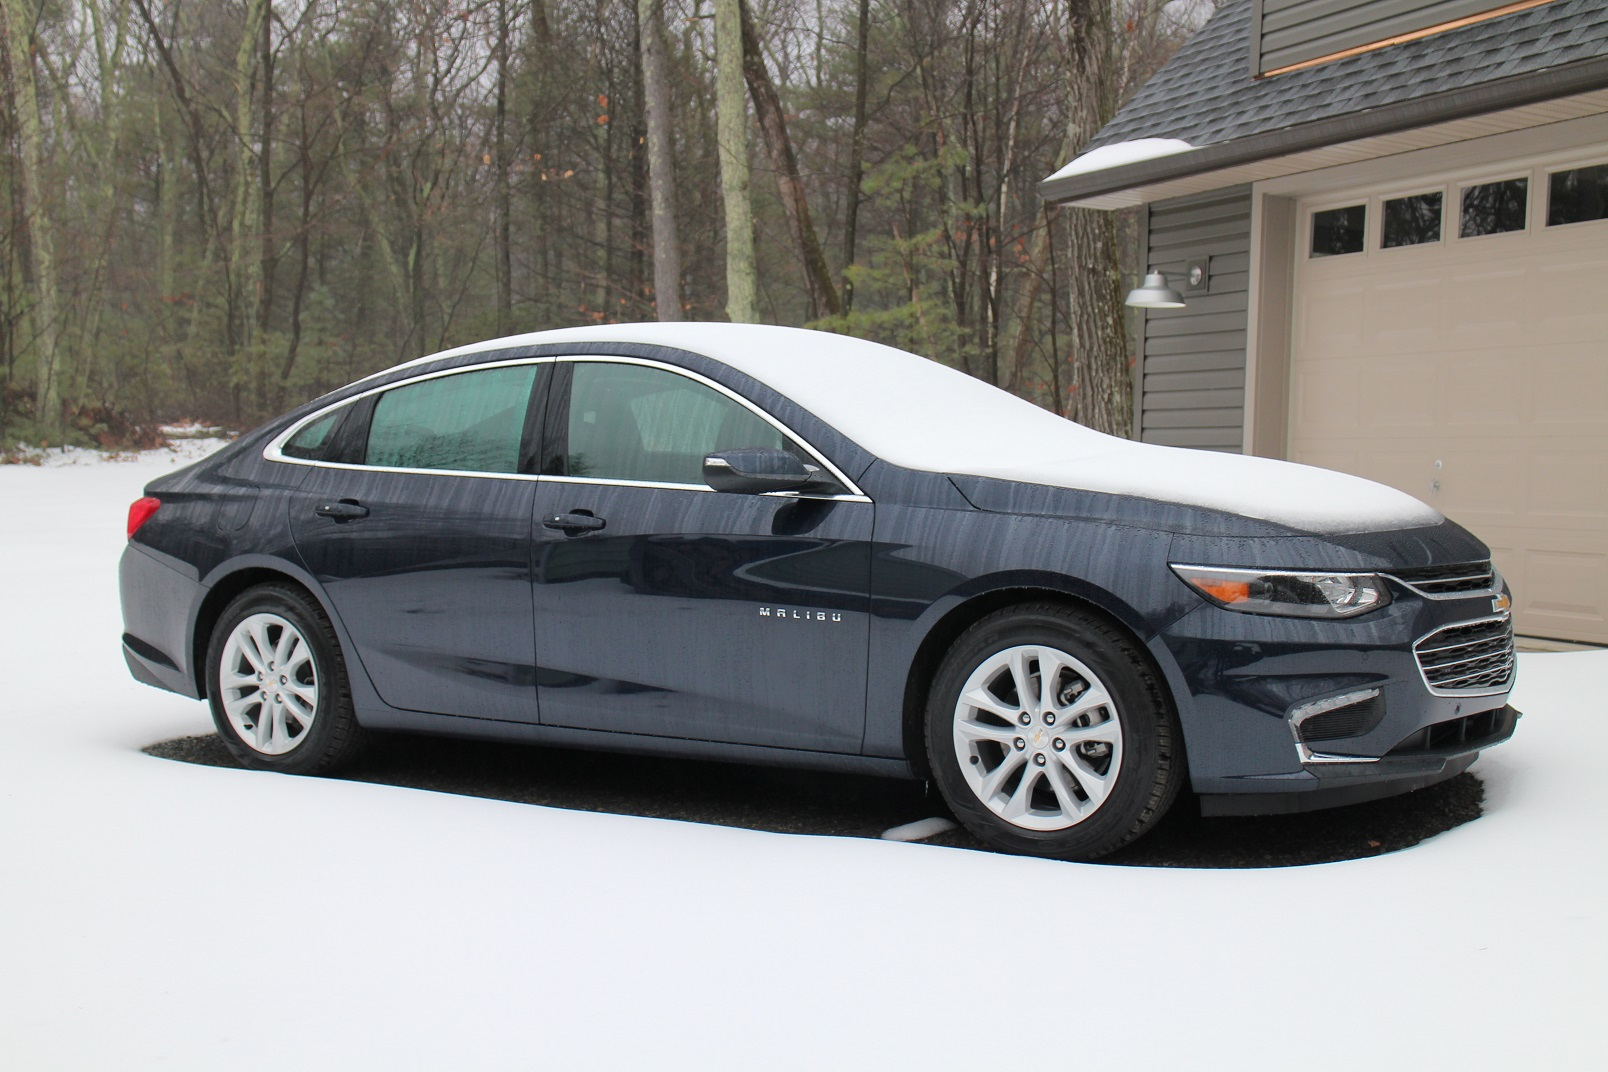 2016 chevrolet malibu hybrid first drive of sedan using volt hybrid system. Black Bedroom Furniture Sets. Home Design Ideas